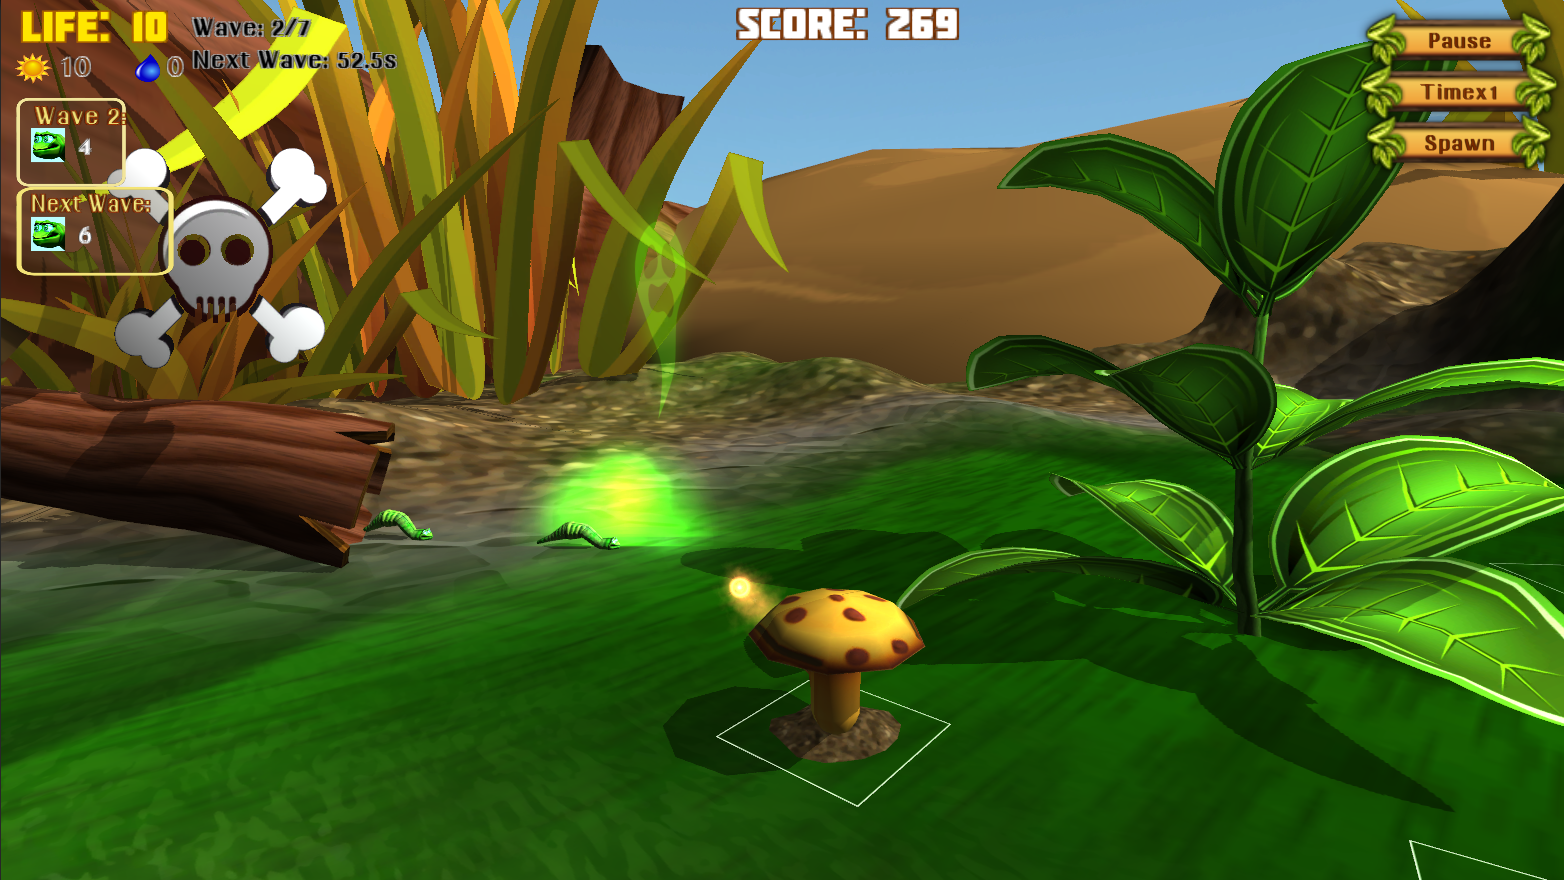 testscreen 1 - Dangerous Insects 1.1 - Espectacular Juego para Linux